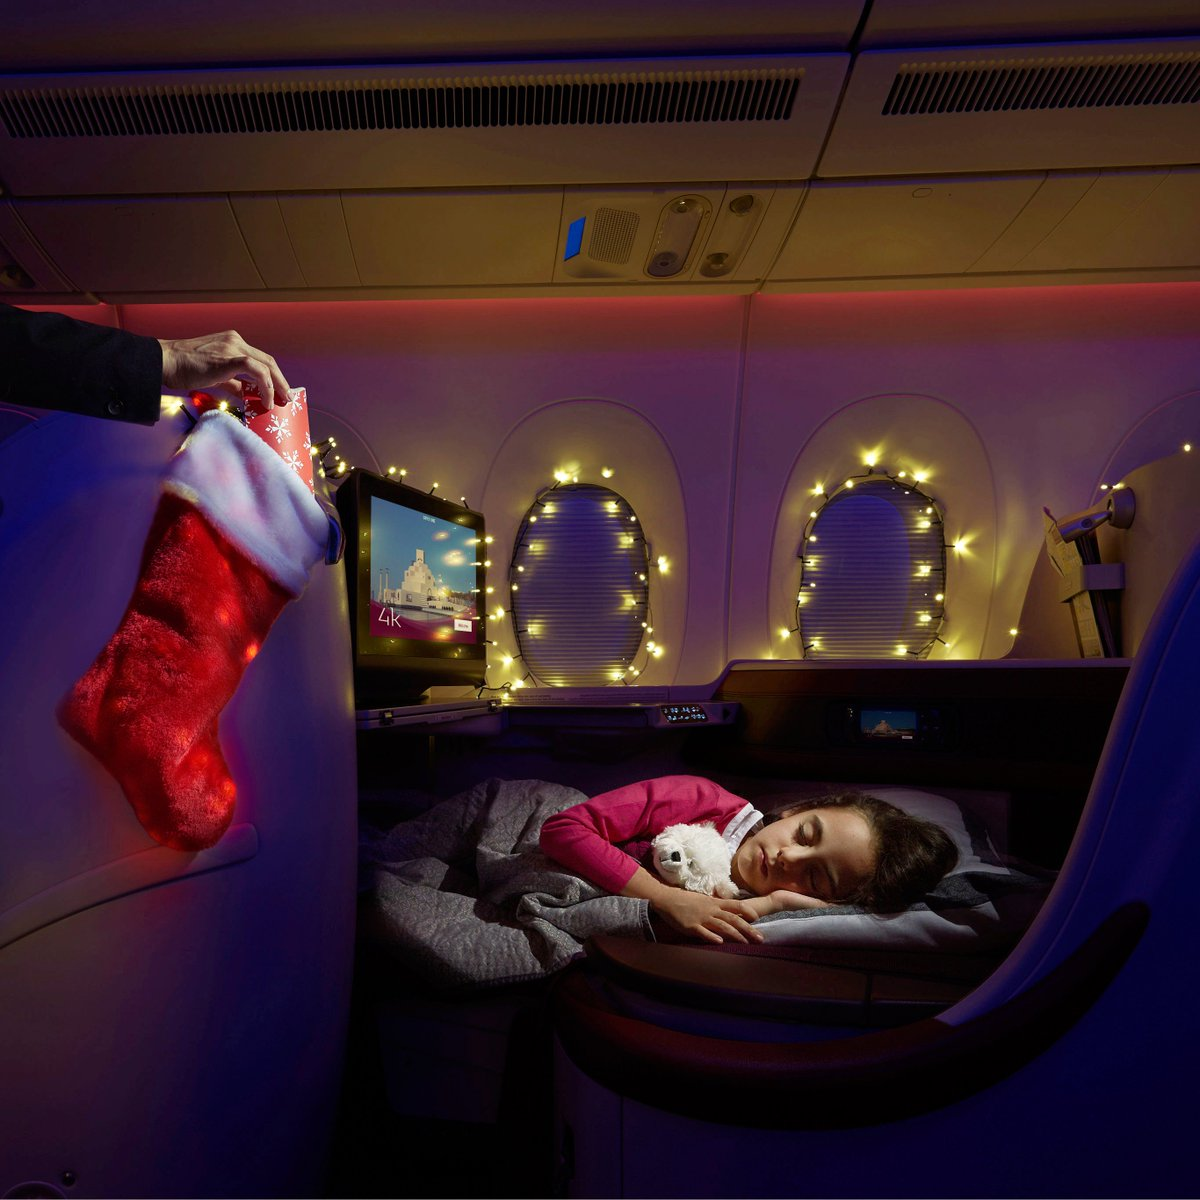 Qatar Airways On Twitter The Best Holiday Gift Is Coming Together